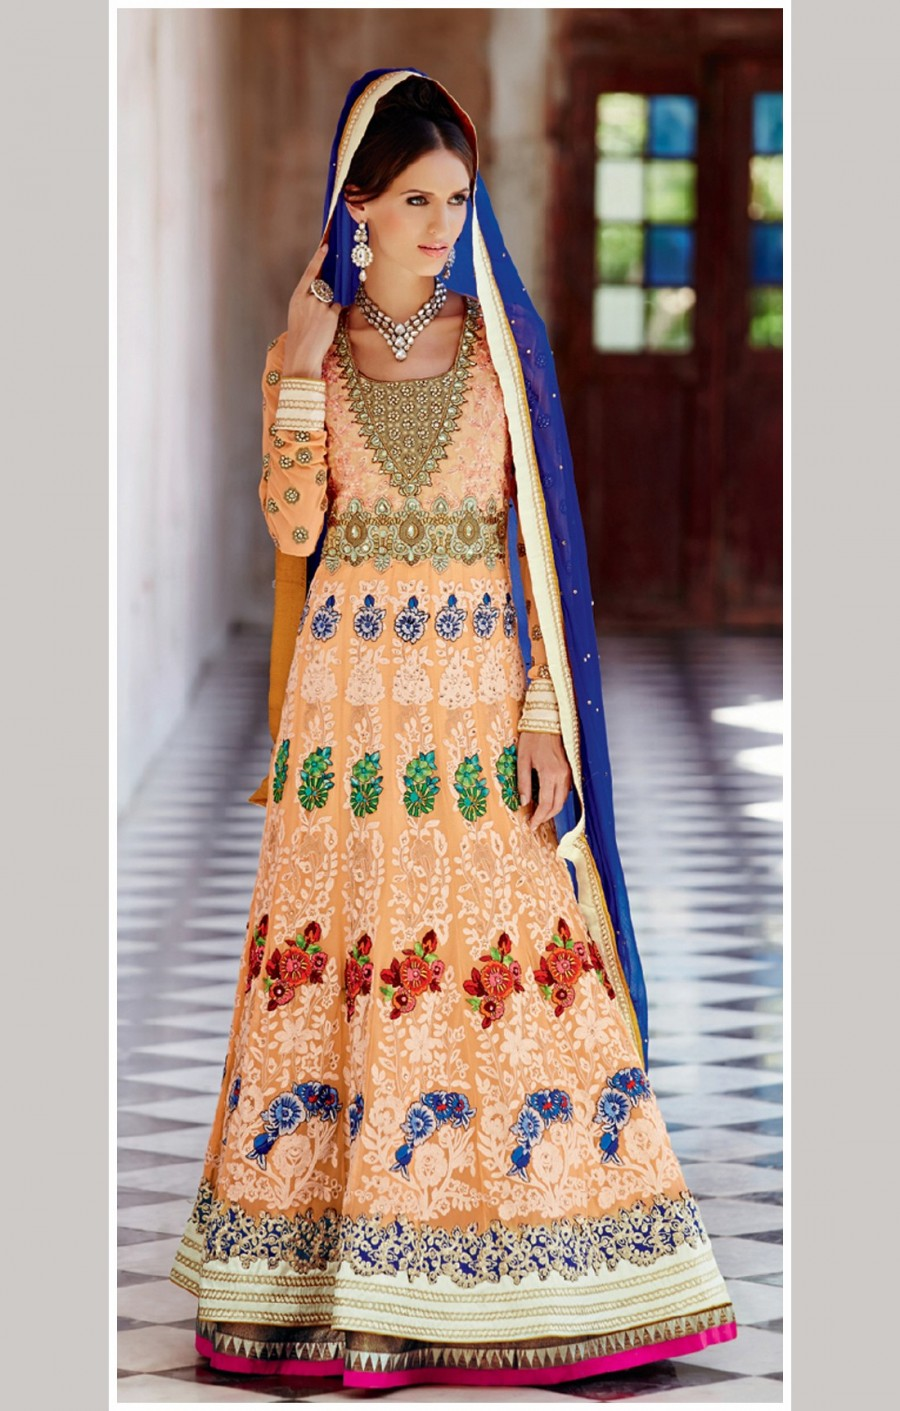 c368c8f29a Buy Peach Georgette Floral Embroidery Worked Fancy Suit with Blue Dupatta  Online